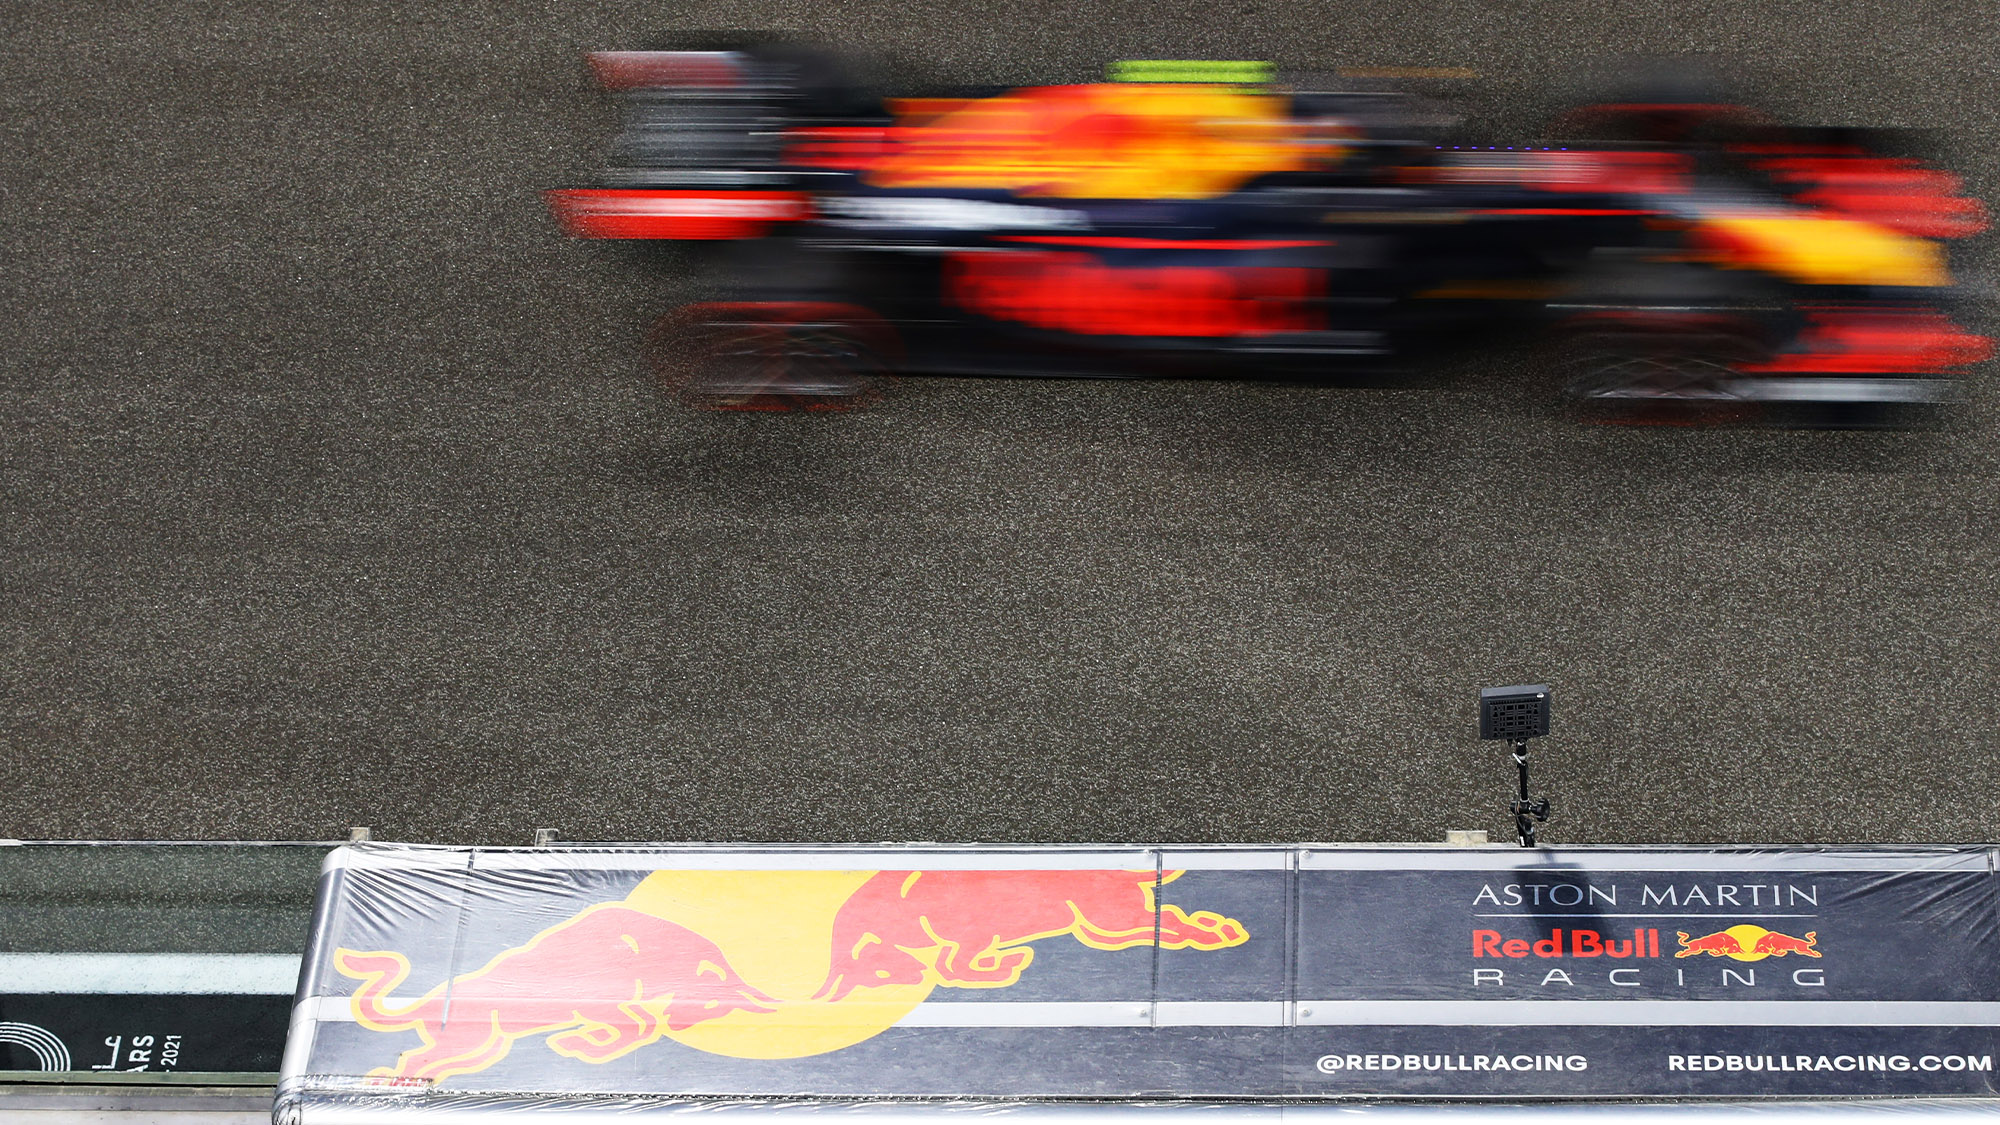 Alex Albon's Red Bull is a blur as it passes the pitwal at the 2020 Abu Dhabi GP